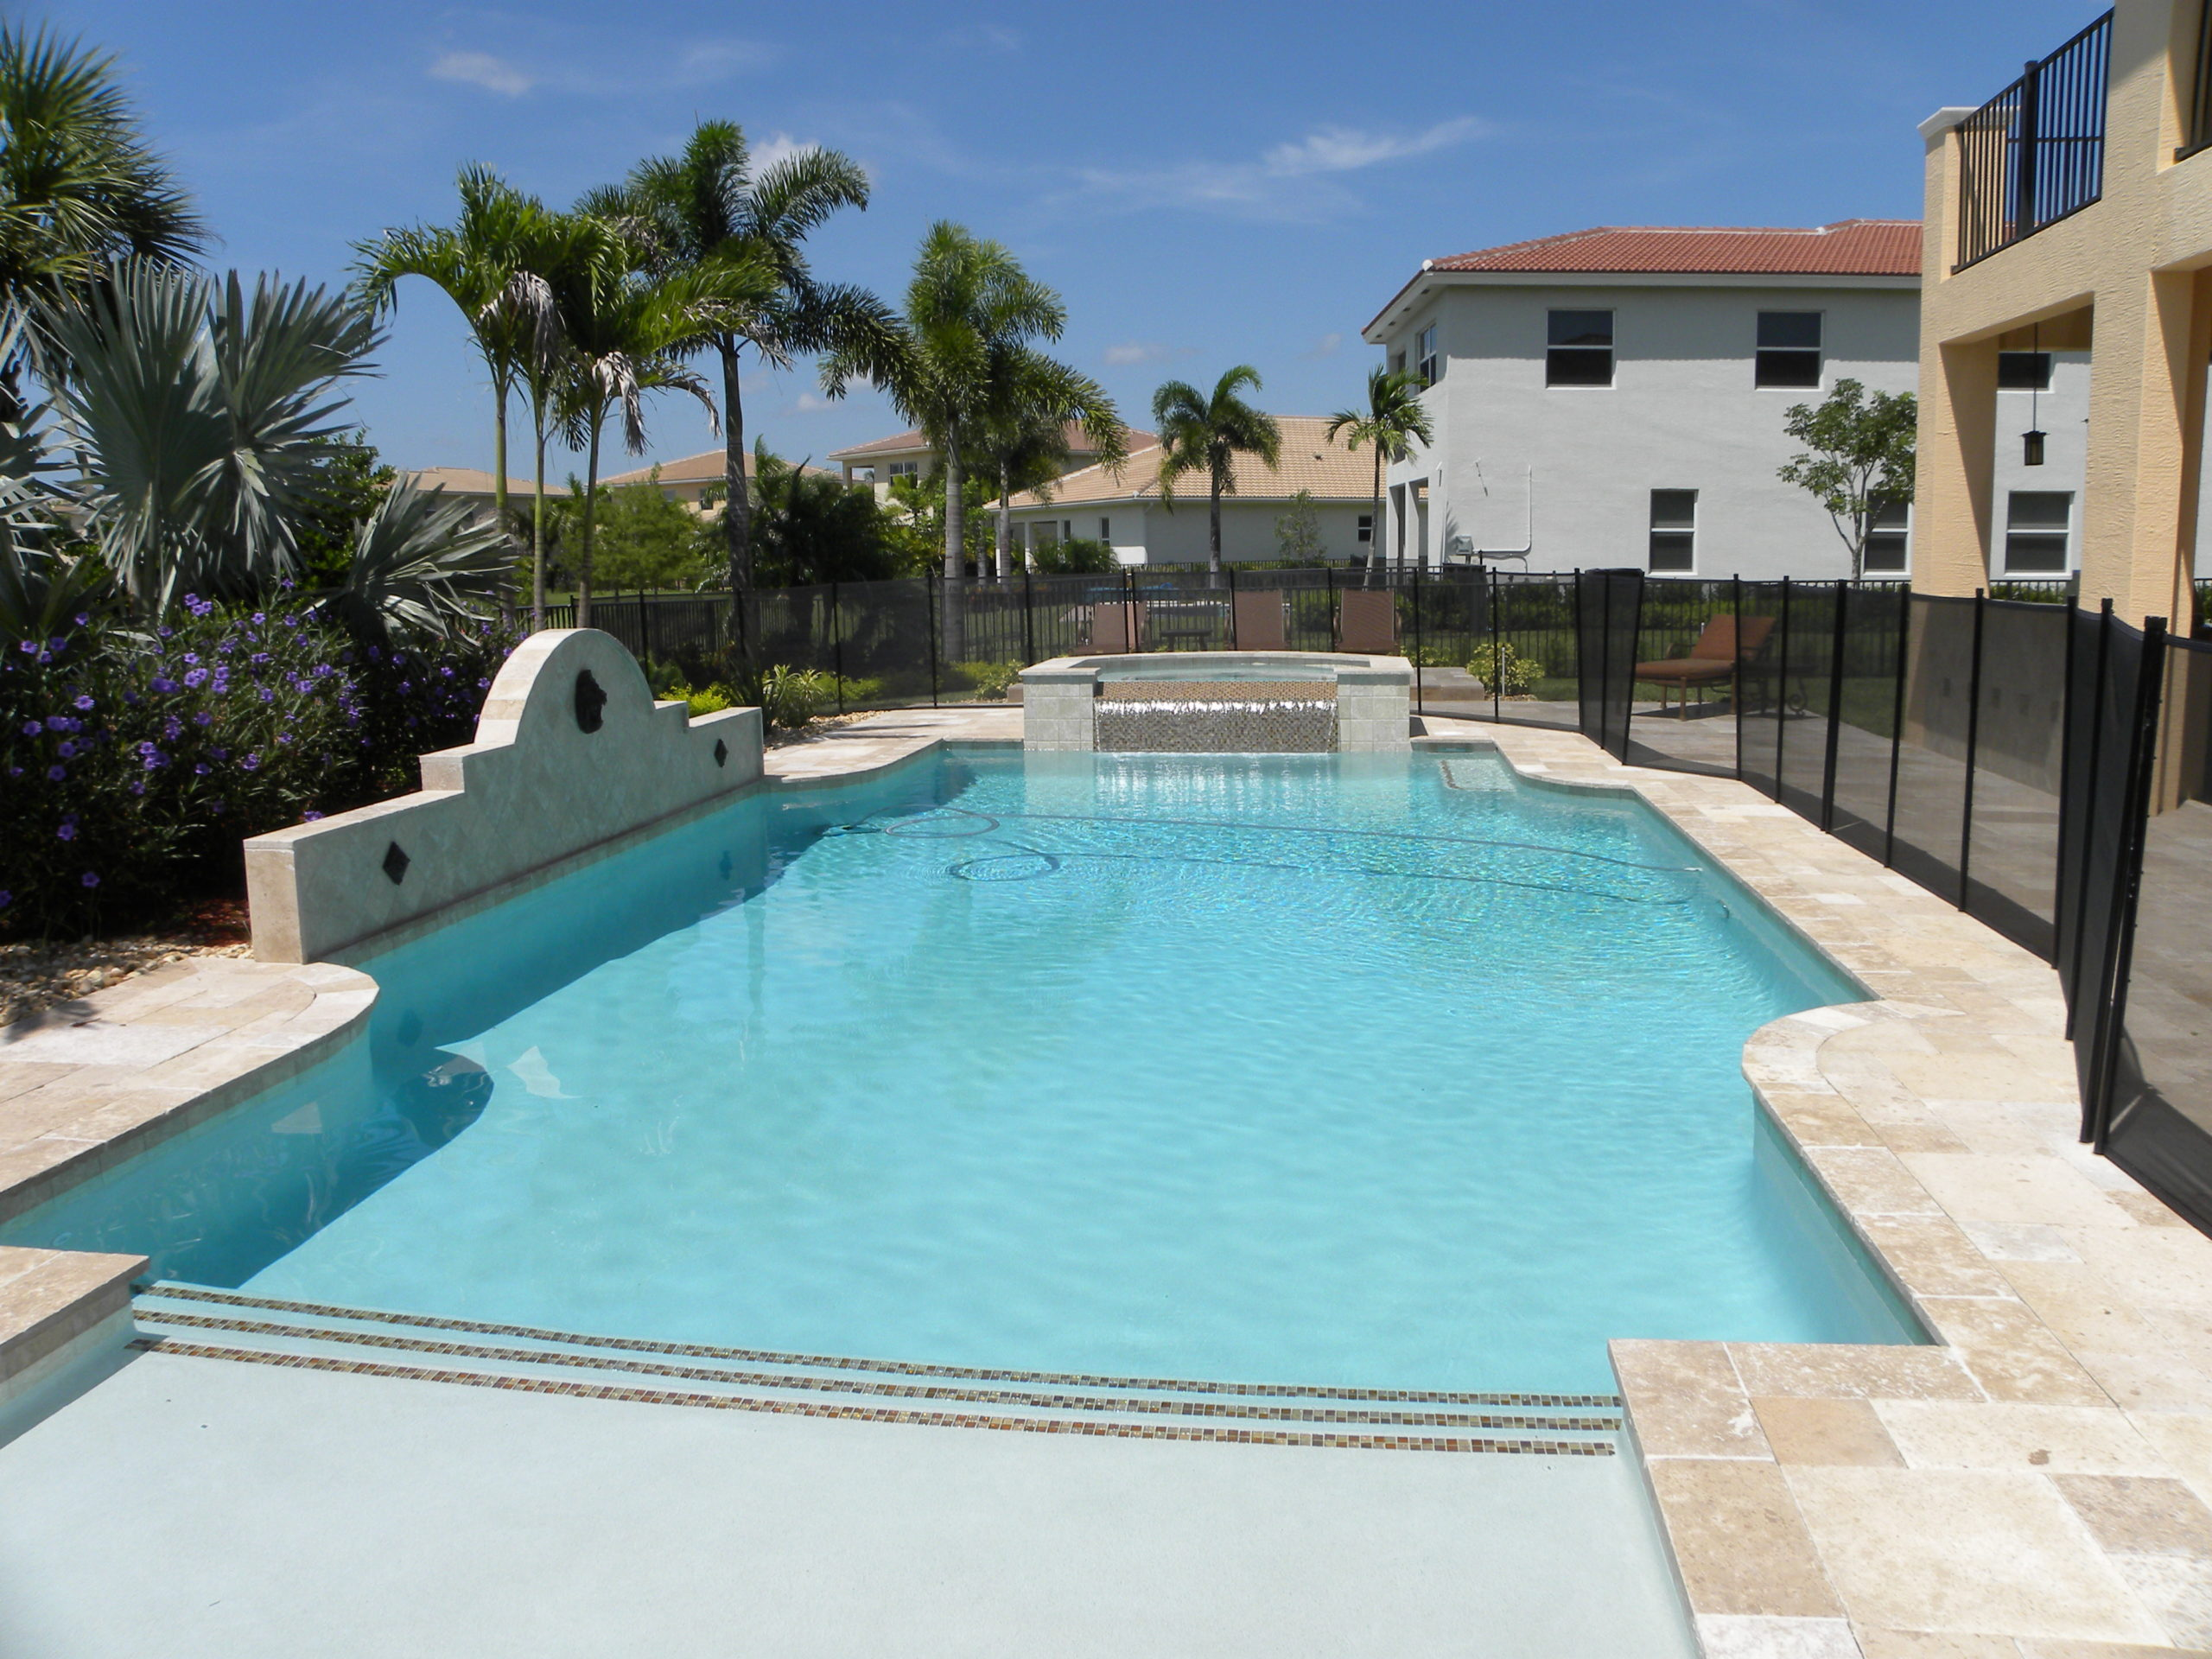 rhr pools of jupiter fl large sunshelf with raised spa and waterfall